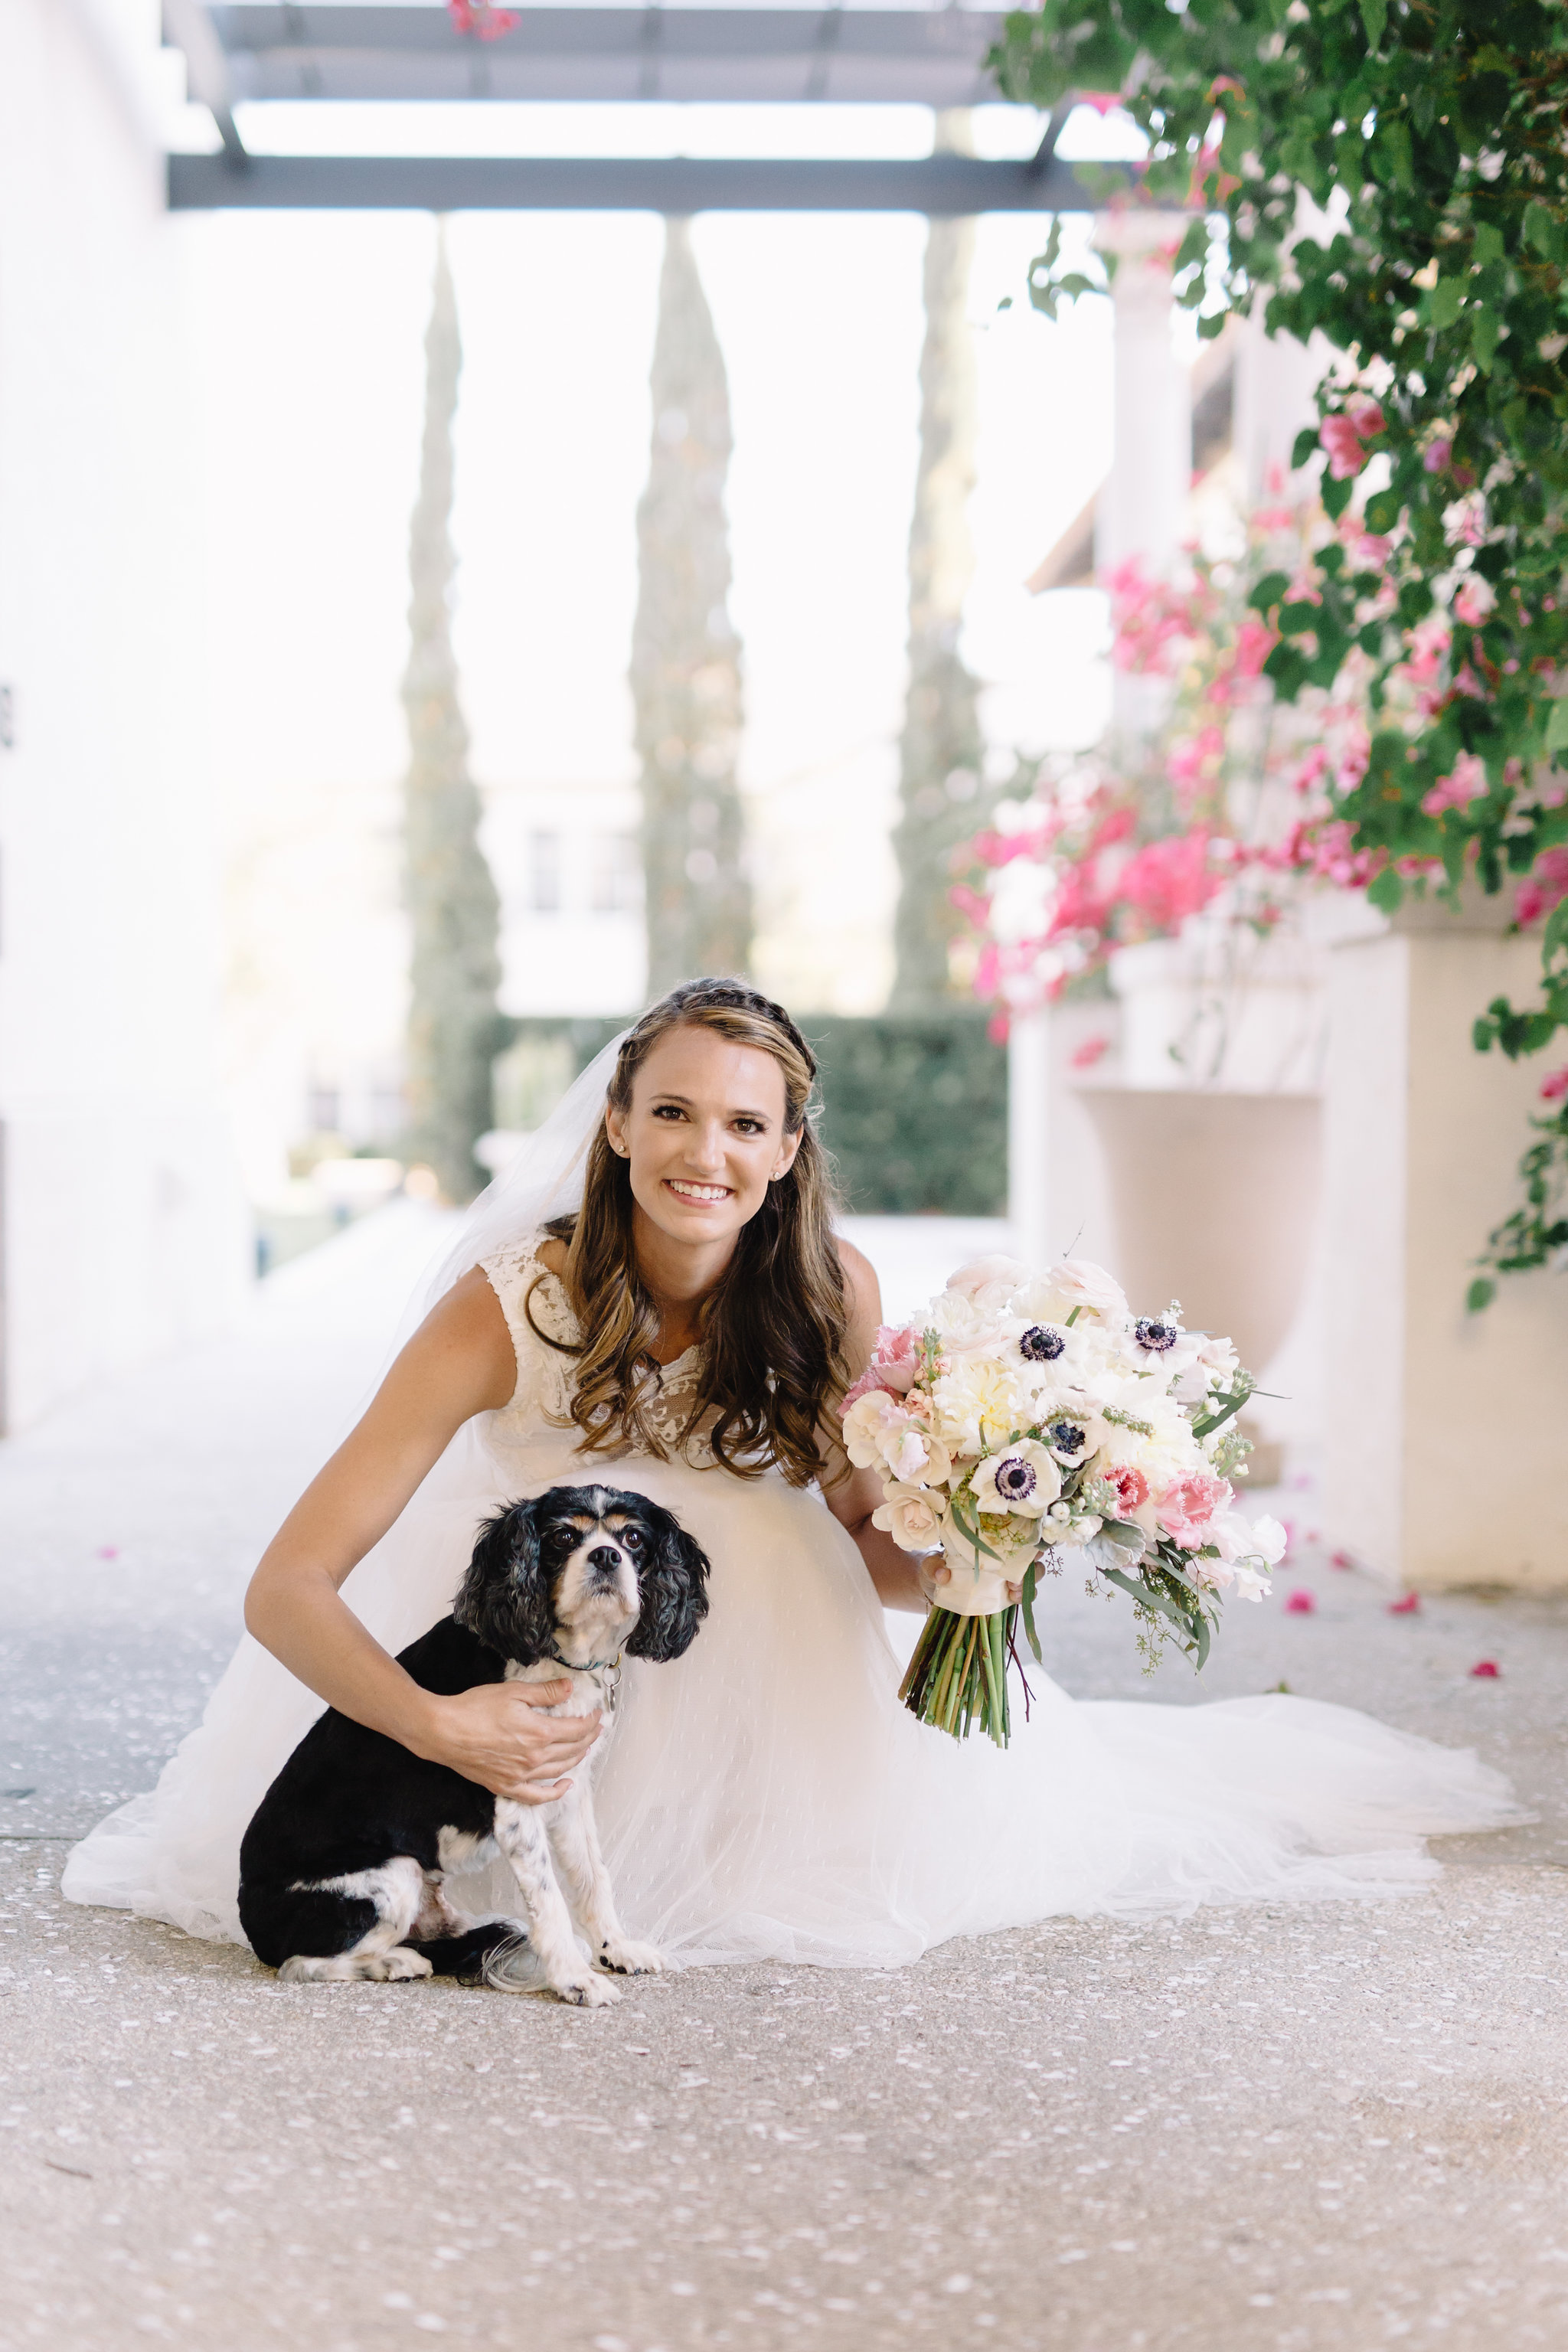 Carson and her sweet puppy, Winter Park Weddings